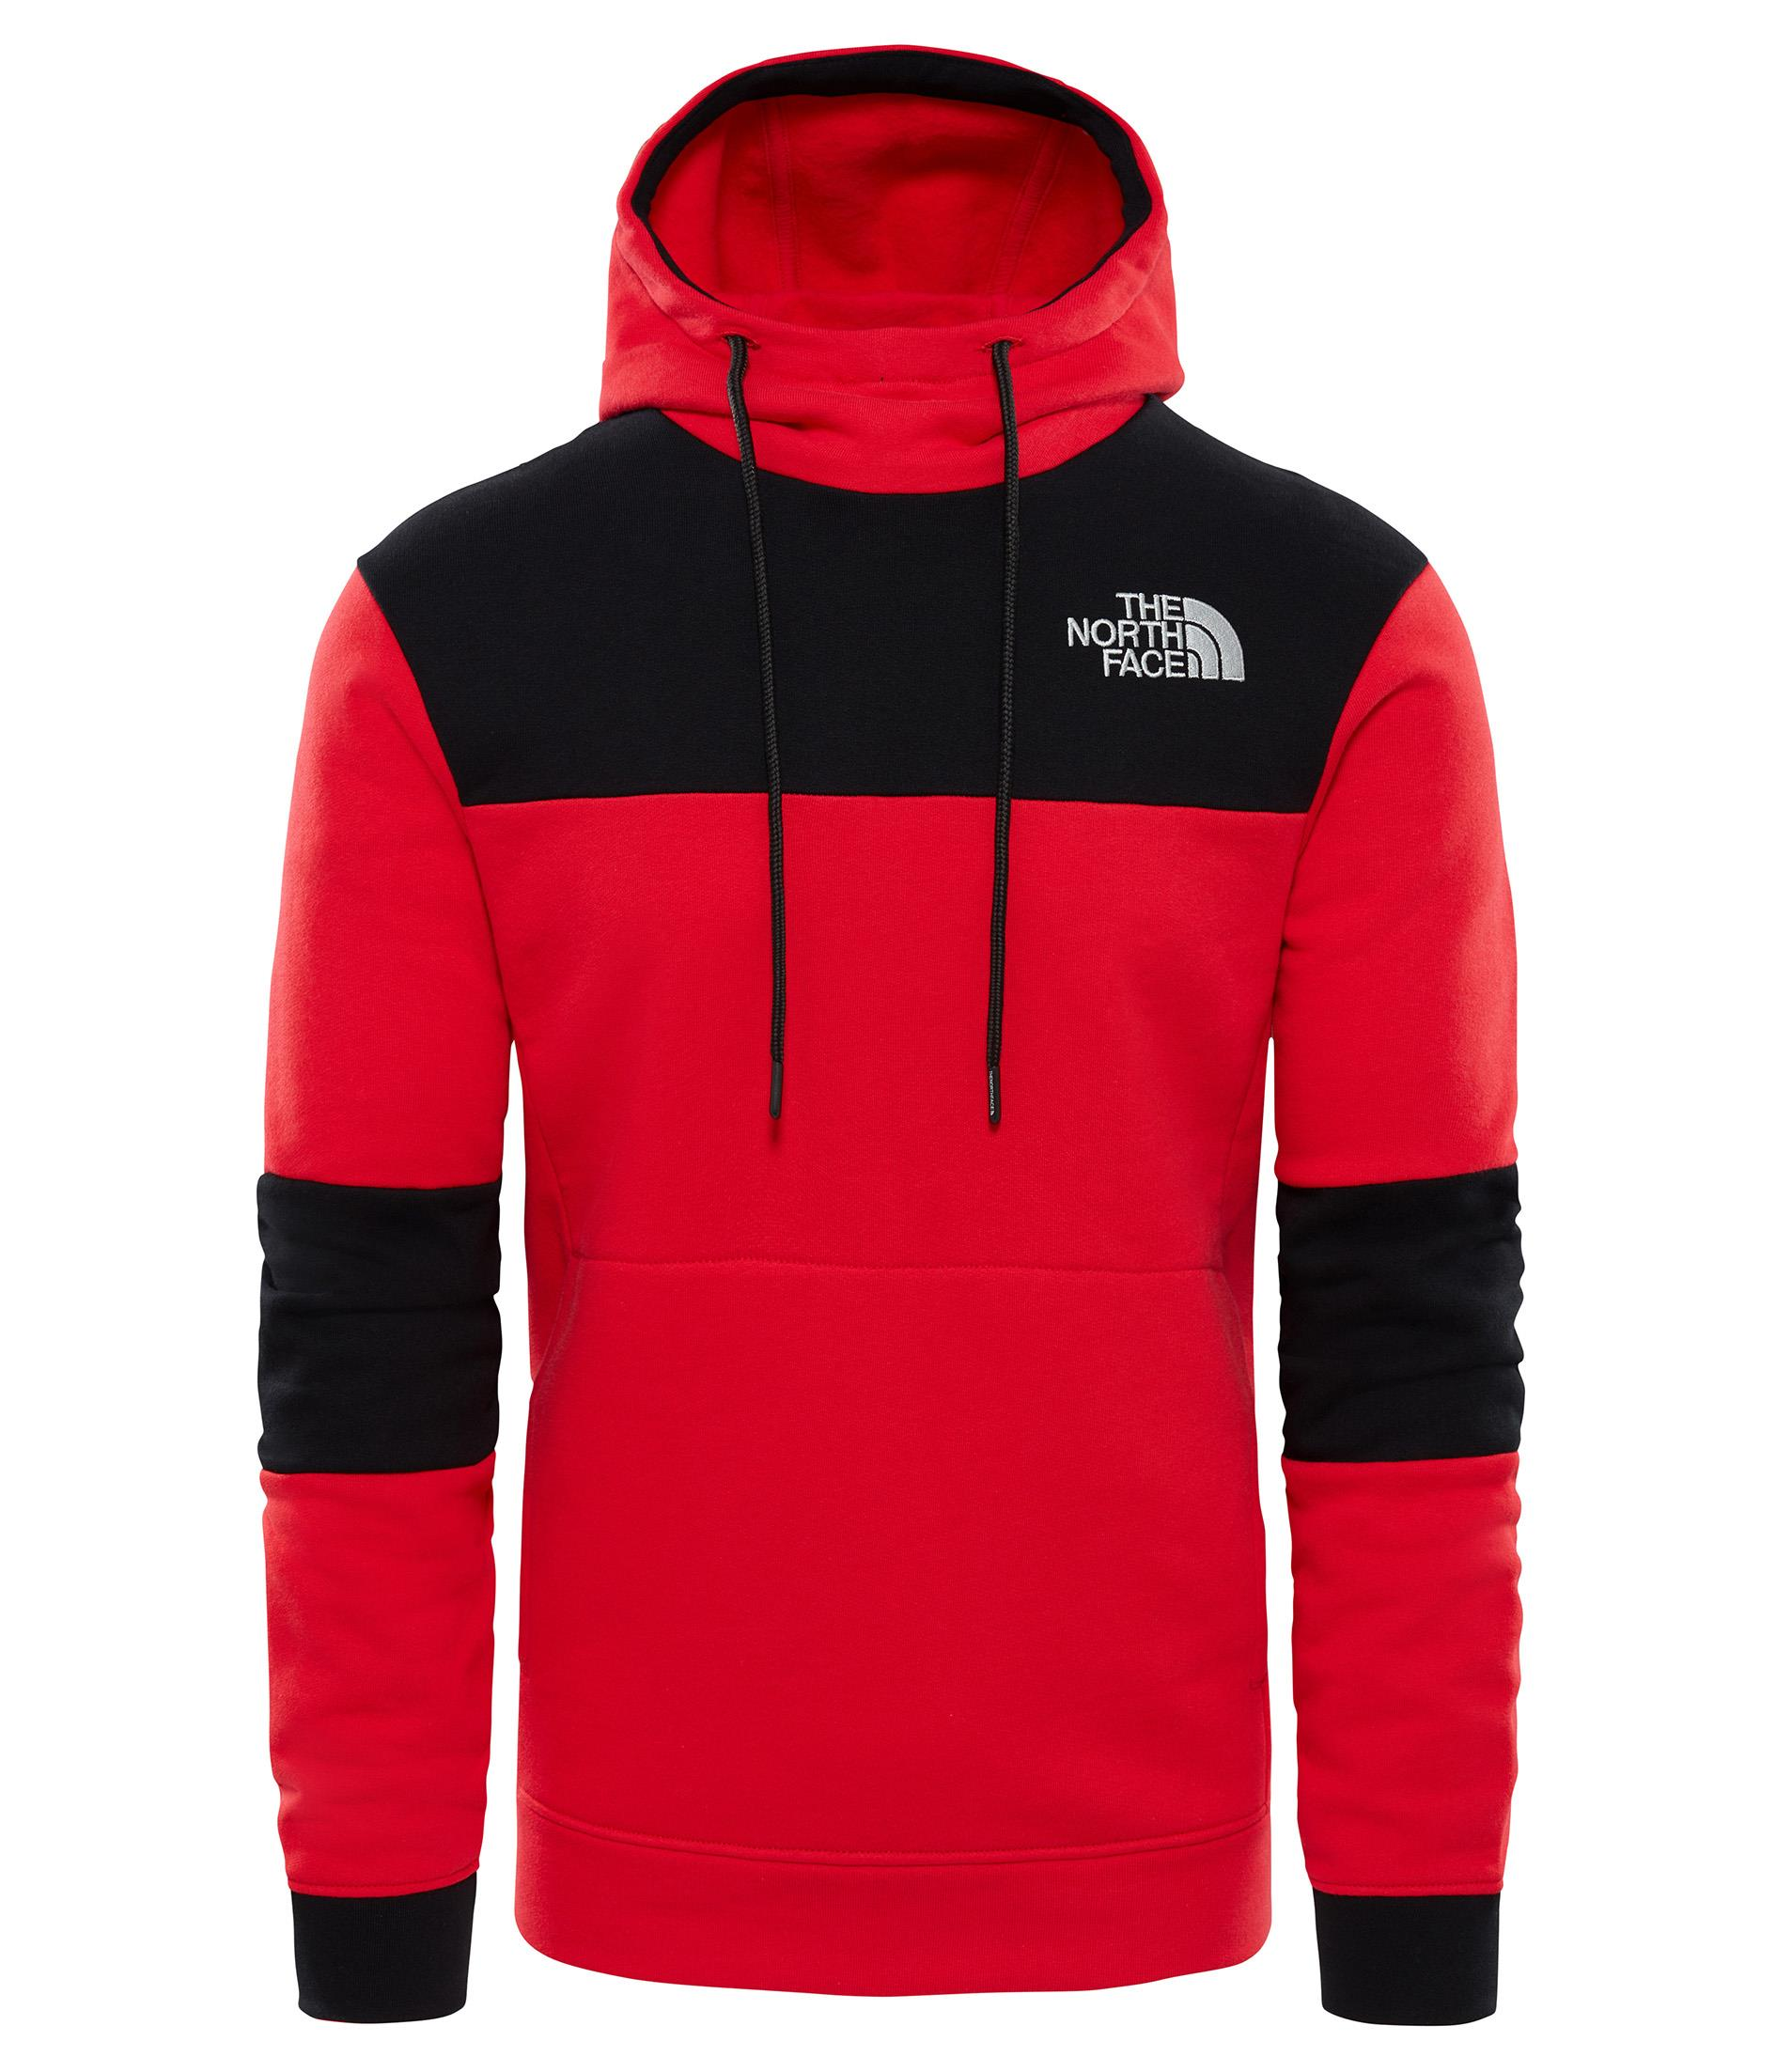 The North Face Erkek Himalayan Hoodie Sweat Shirt T93L6I682